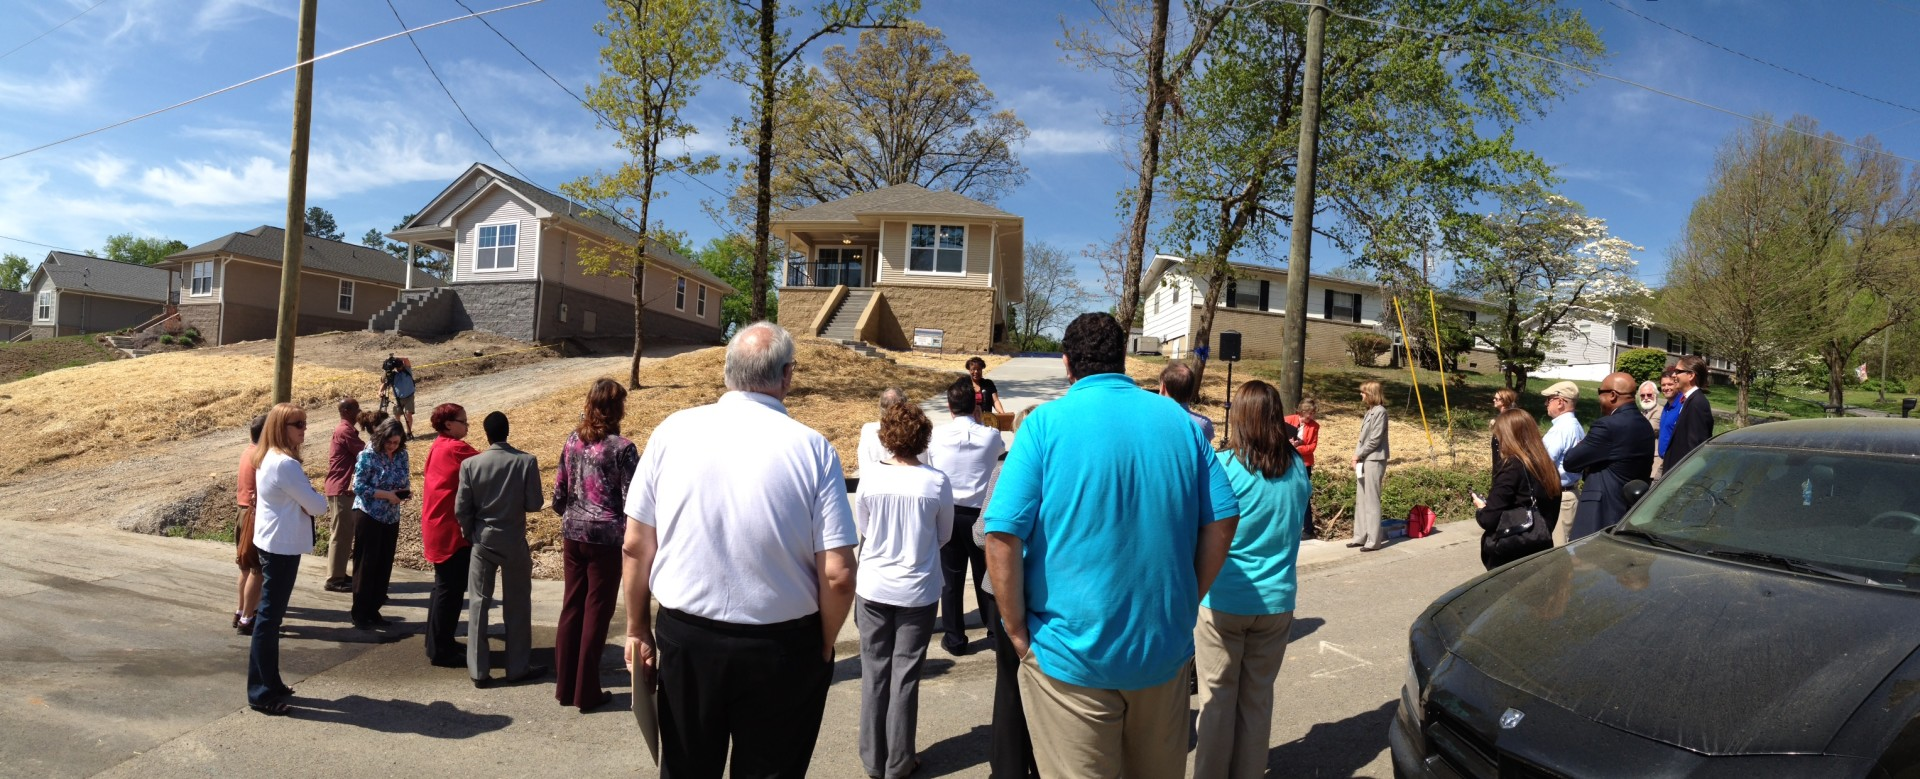 Ribbon cutting ceremony for the house at 3435 Bishop street